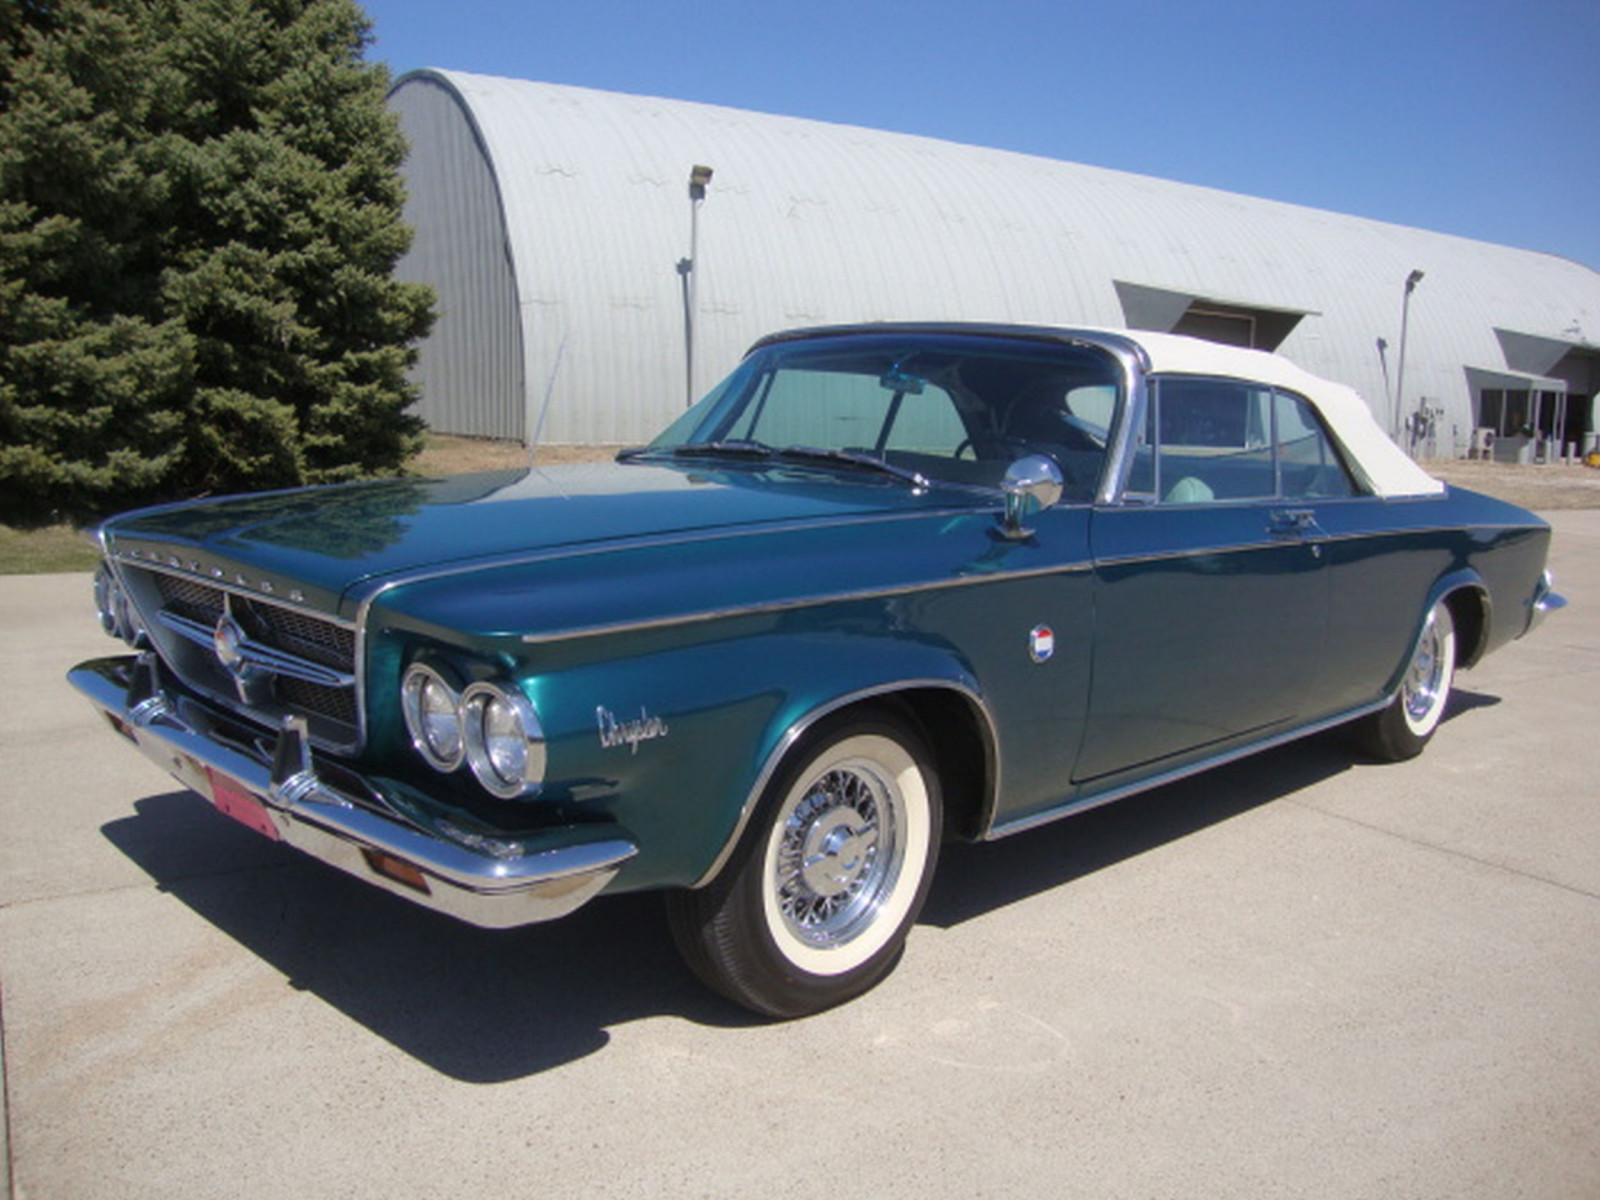 RARE 1963 Chrysler 300 Pace Setter Convertible Indy 500 Pace car - Image 14